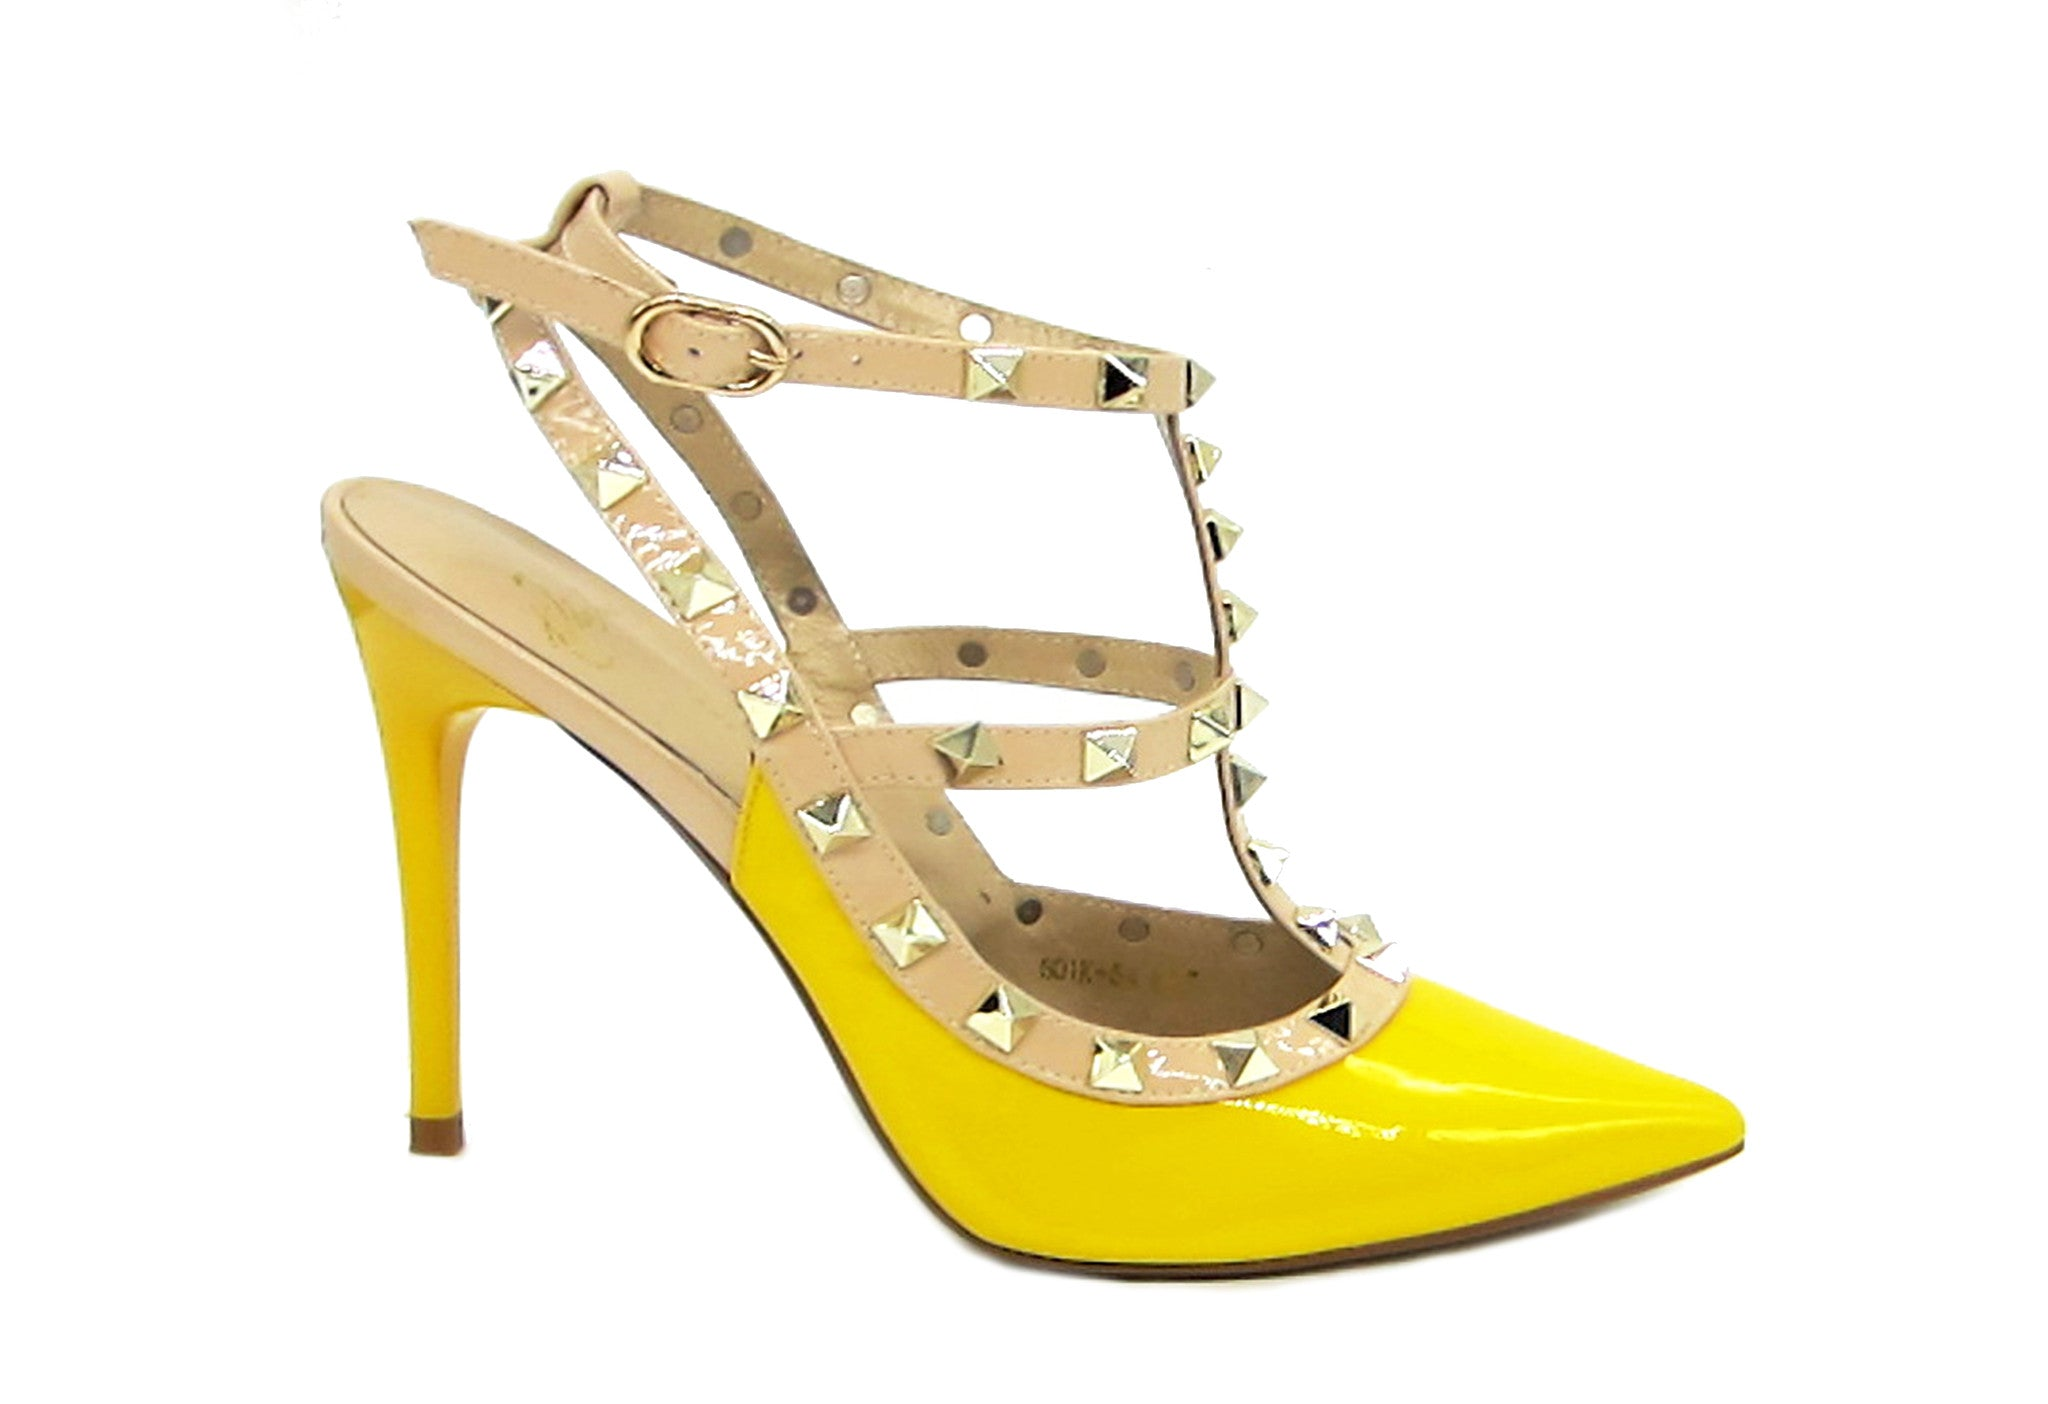 434402bdf6 Stylish Shoes - Yellow Rockstud Slingback Sandals - Angelina Voloshina - AV  Heels - 1 ...